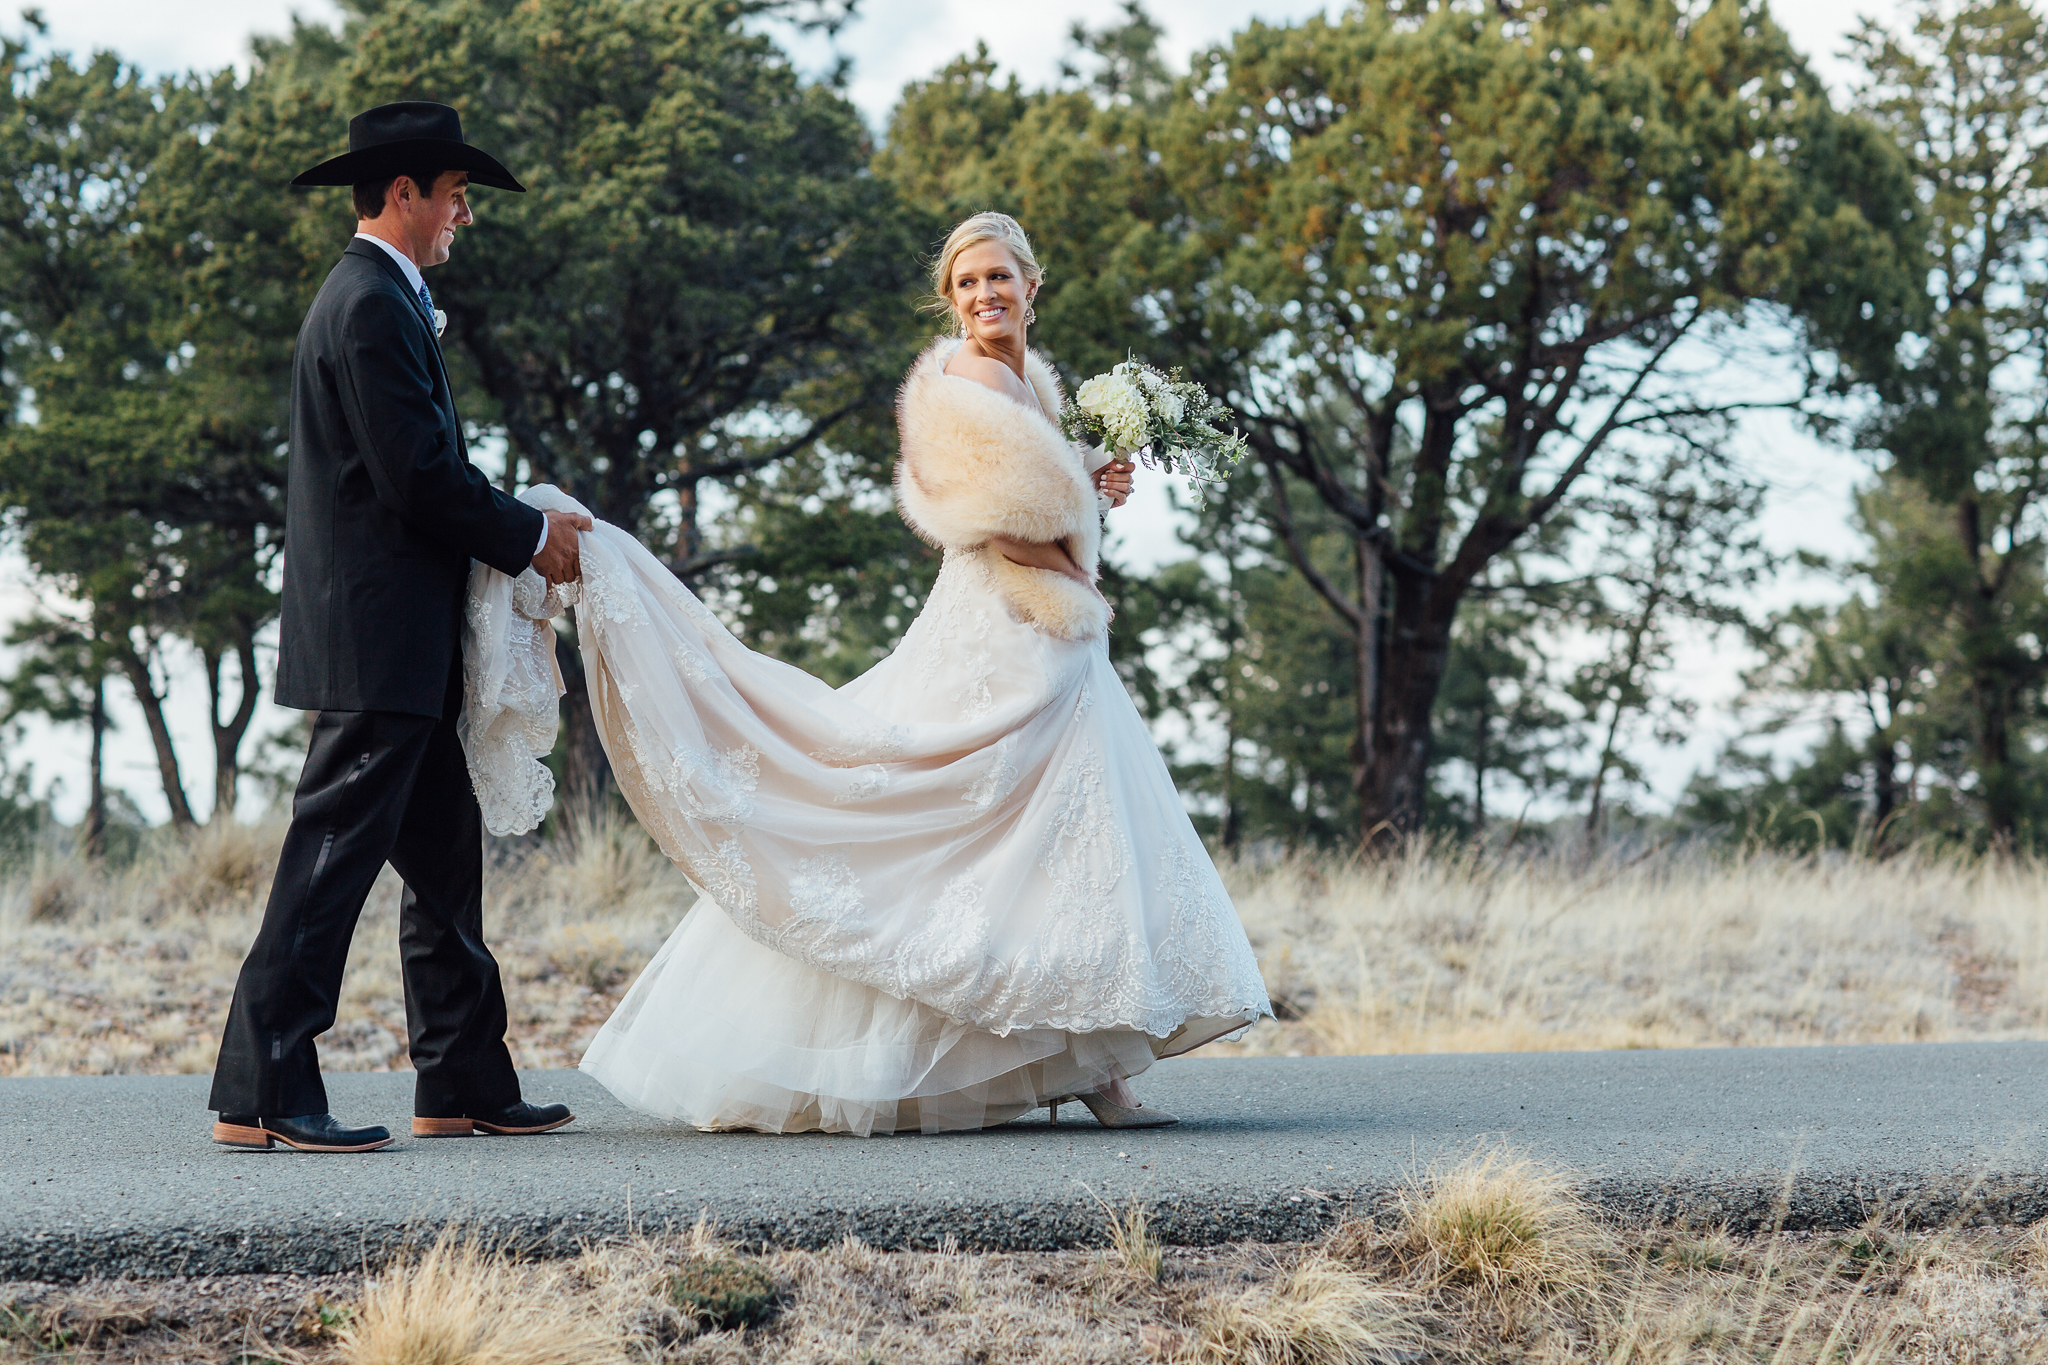 Ruidoso Wedding Photography-26.jpg